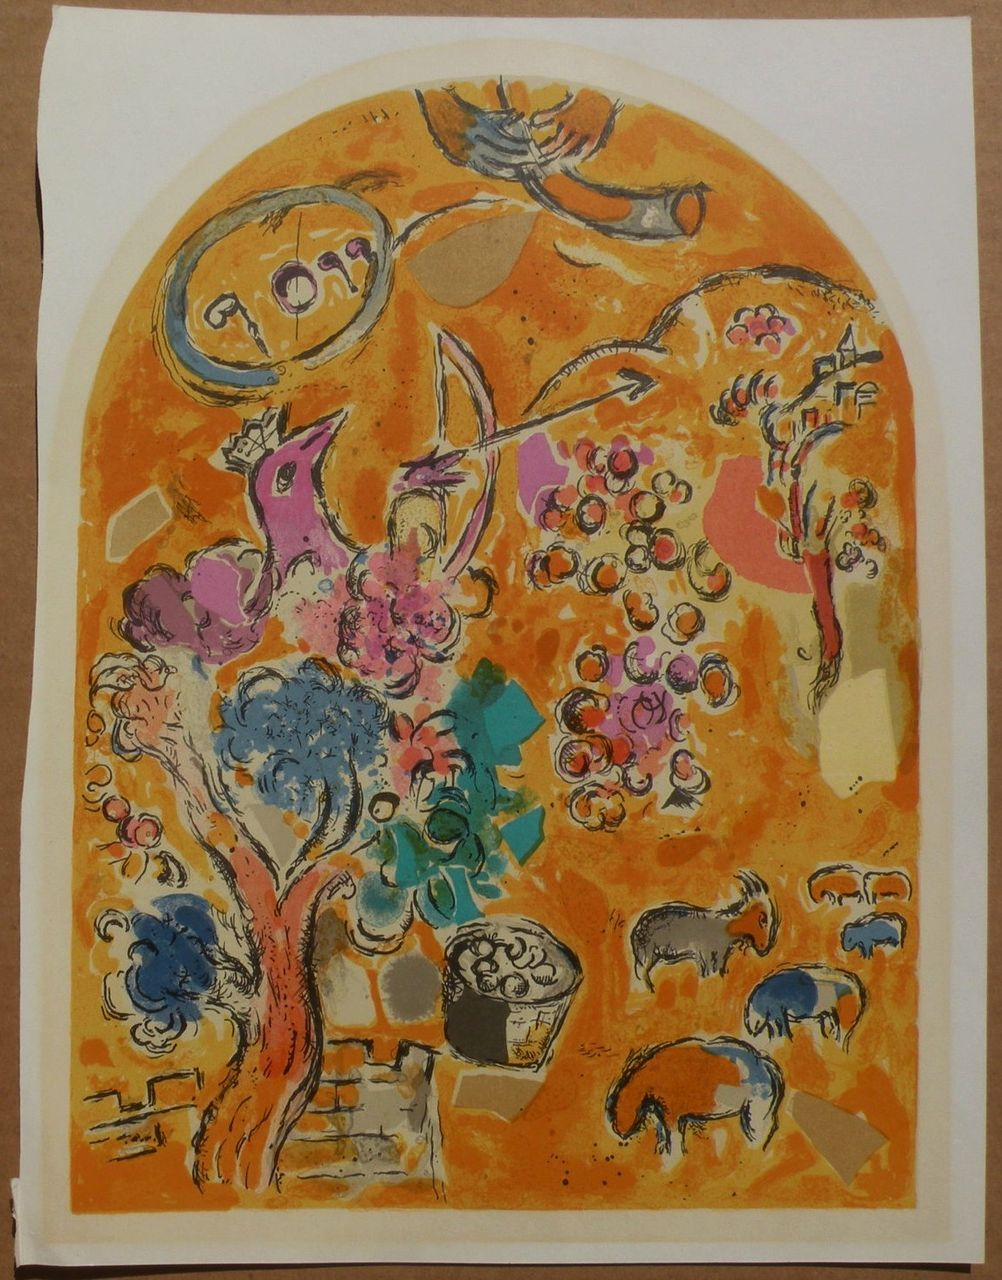 "MARC CHAGALL (1887-1985) original lithograph print ""The Tribe of Joseph"" from The Jerusalem Windows series"